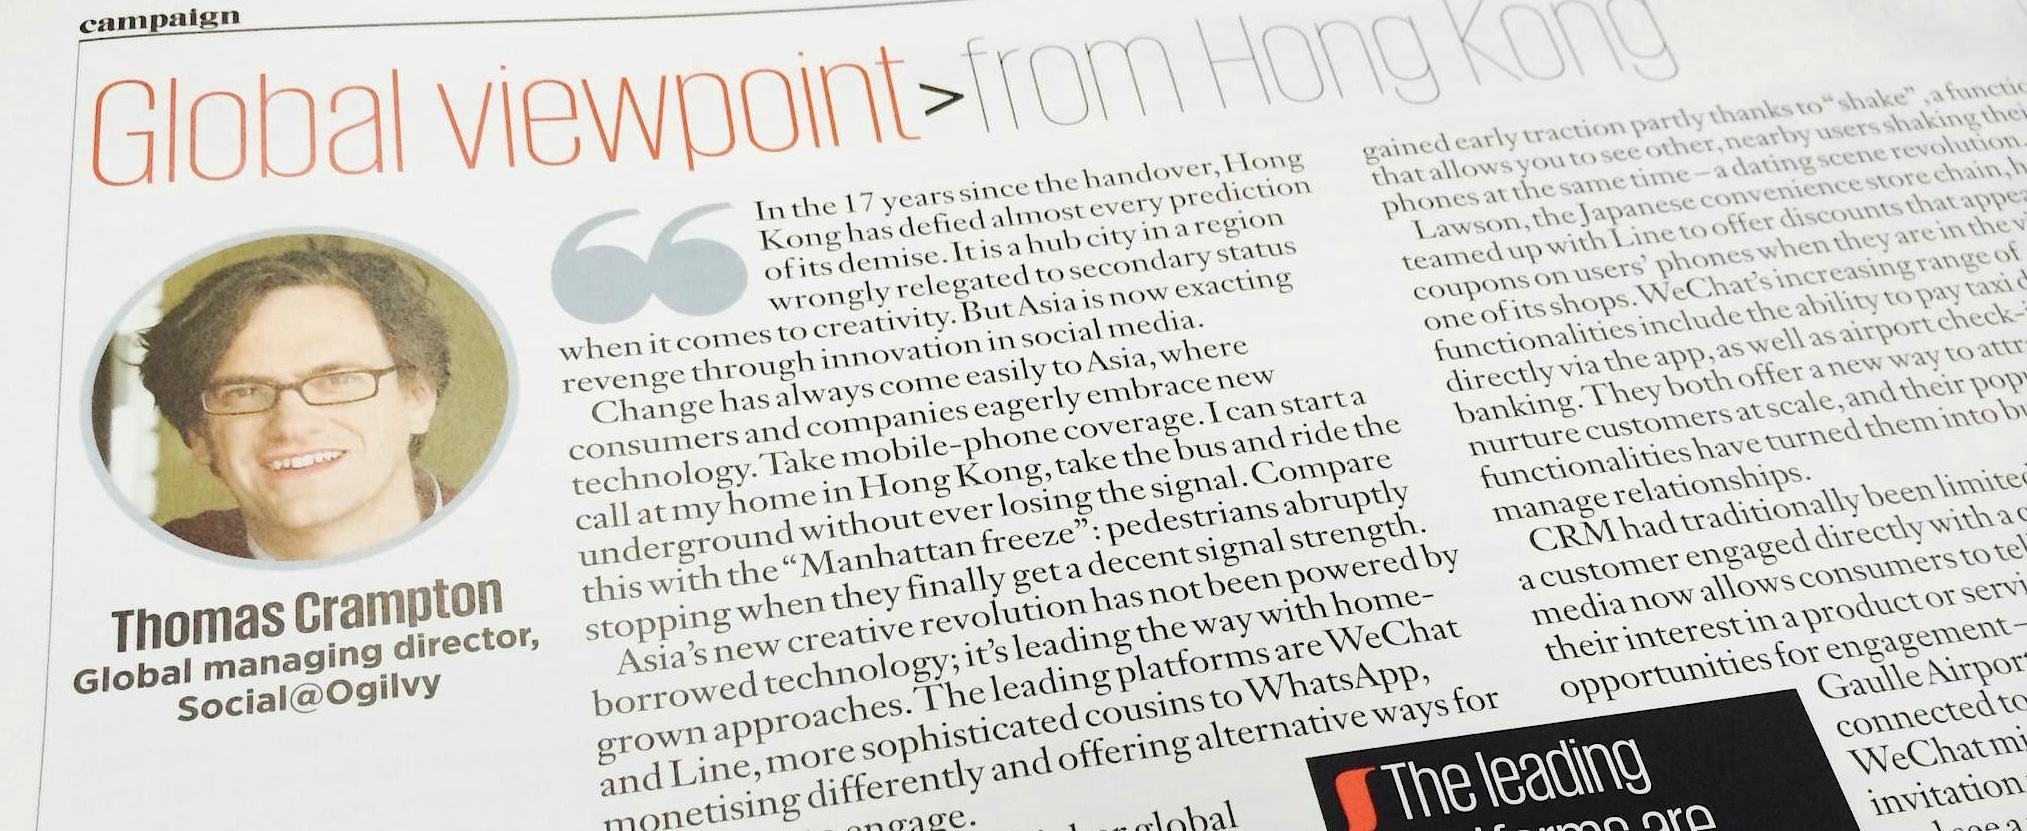 RT @OgilvyUK: Morning read of Global viewpoint from @SocialOgilvy's, @ThomasCrampton in @Campaignmag http://t.co/x0puDw3tsX http://t.co/n1W…